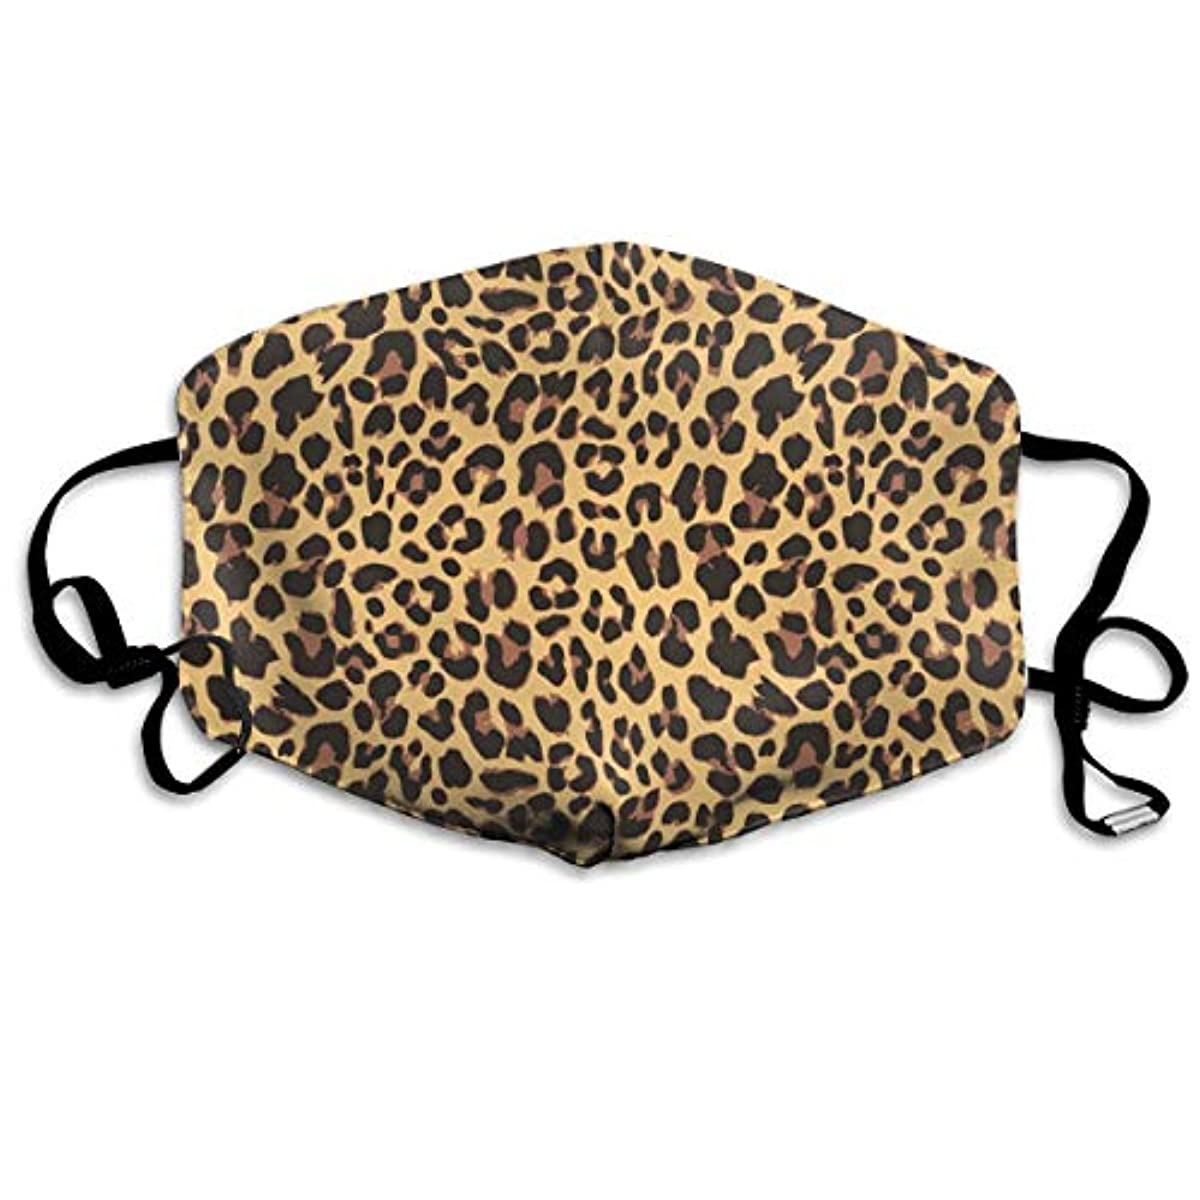 TDynasty Unisex Mouth Mask Fashion Brown Cheetah Dust Pollen Masks Half Face Earloop for Outdoor Cycling